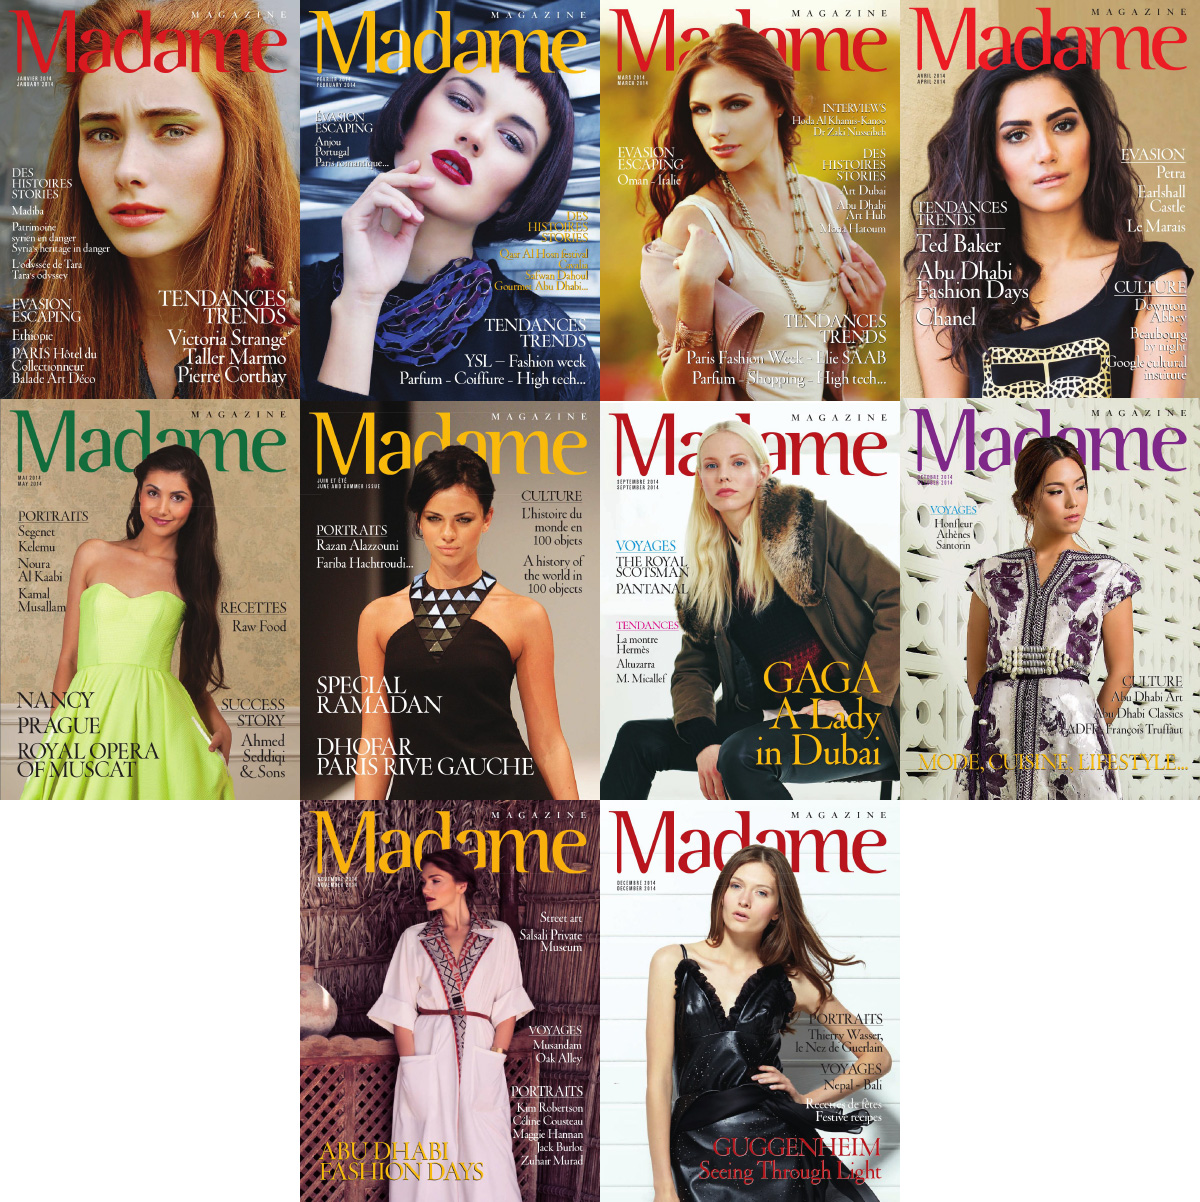 Madame Magazine 2014 Full Year Collection free download